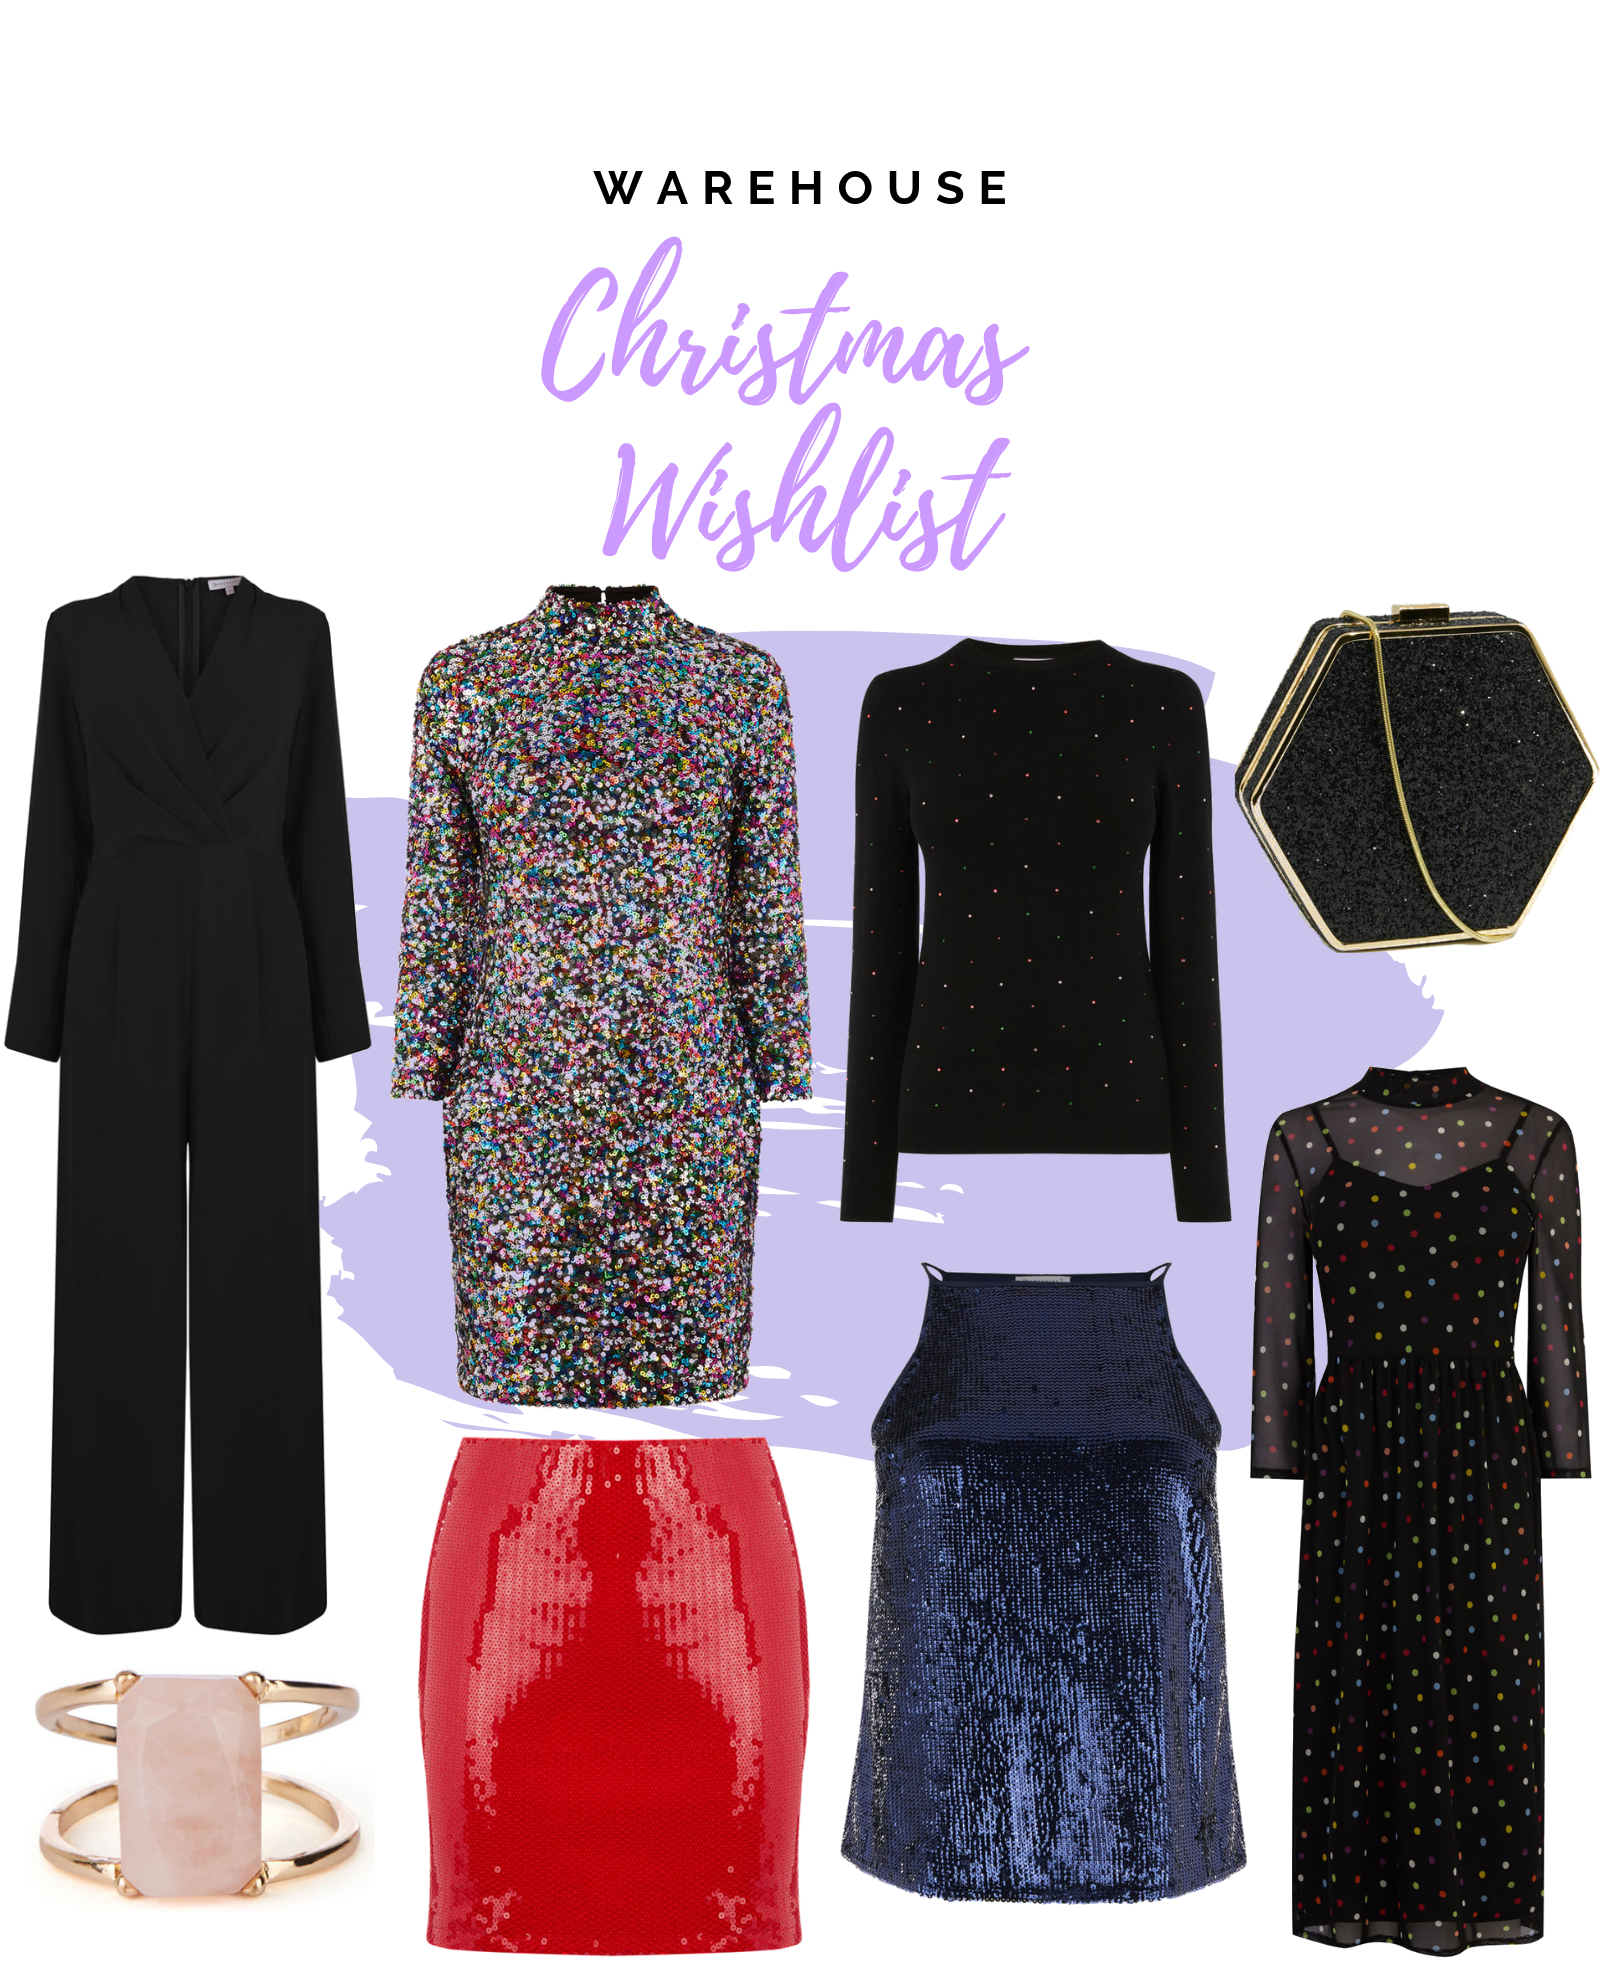 Christmas Party Warehouse Wishlist